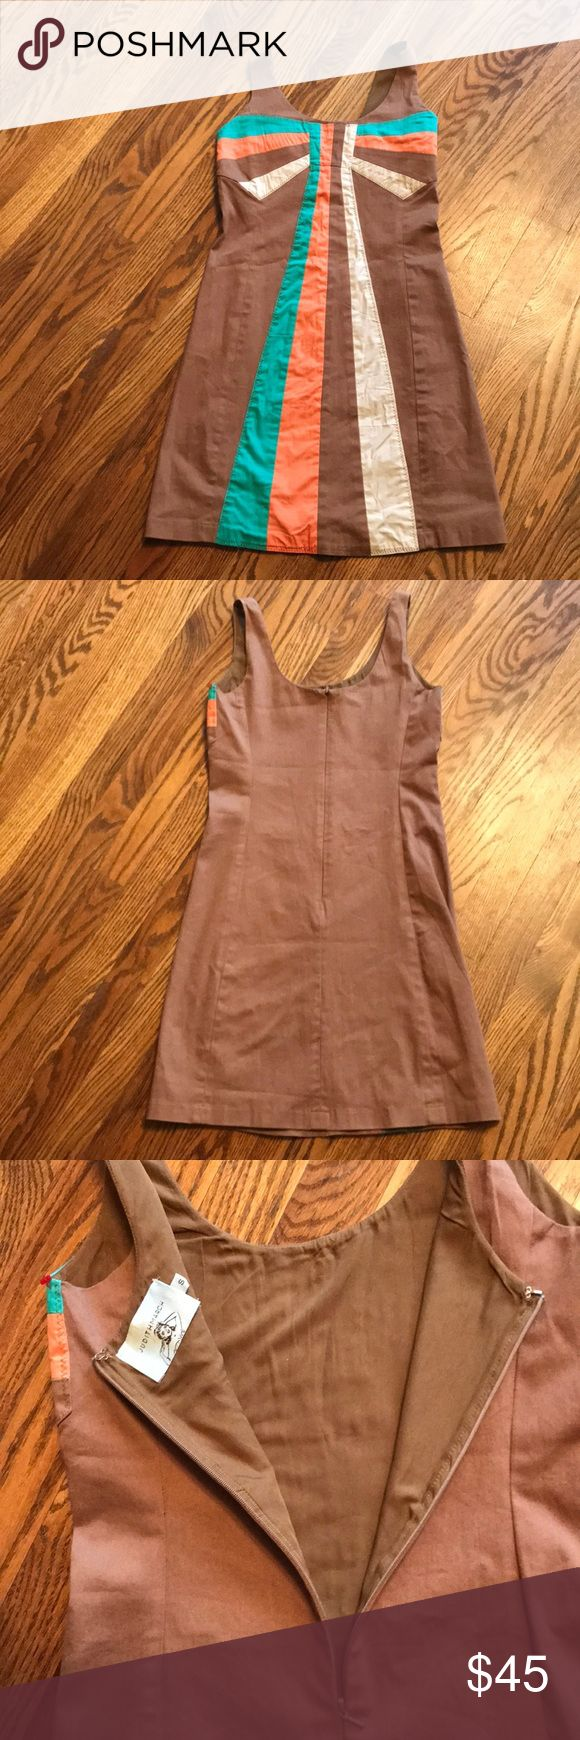 Judith March dress Size small, nwot. No stains or holes. Has zipper and a clasp. Zipper works great. Would look super cute with heels! Judith March Dresses